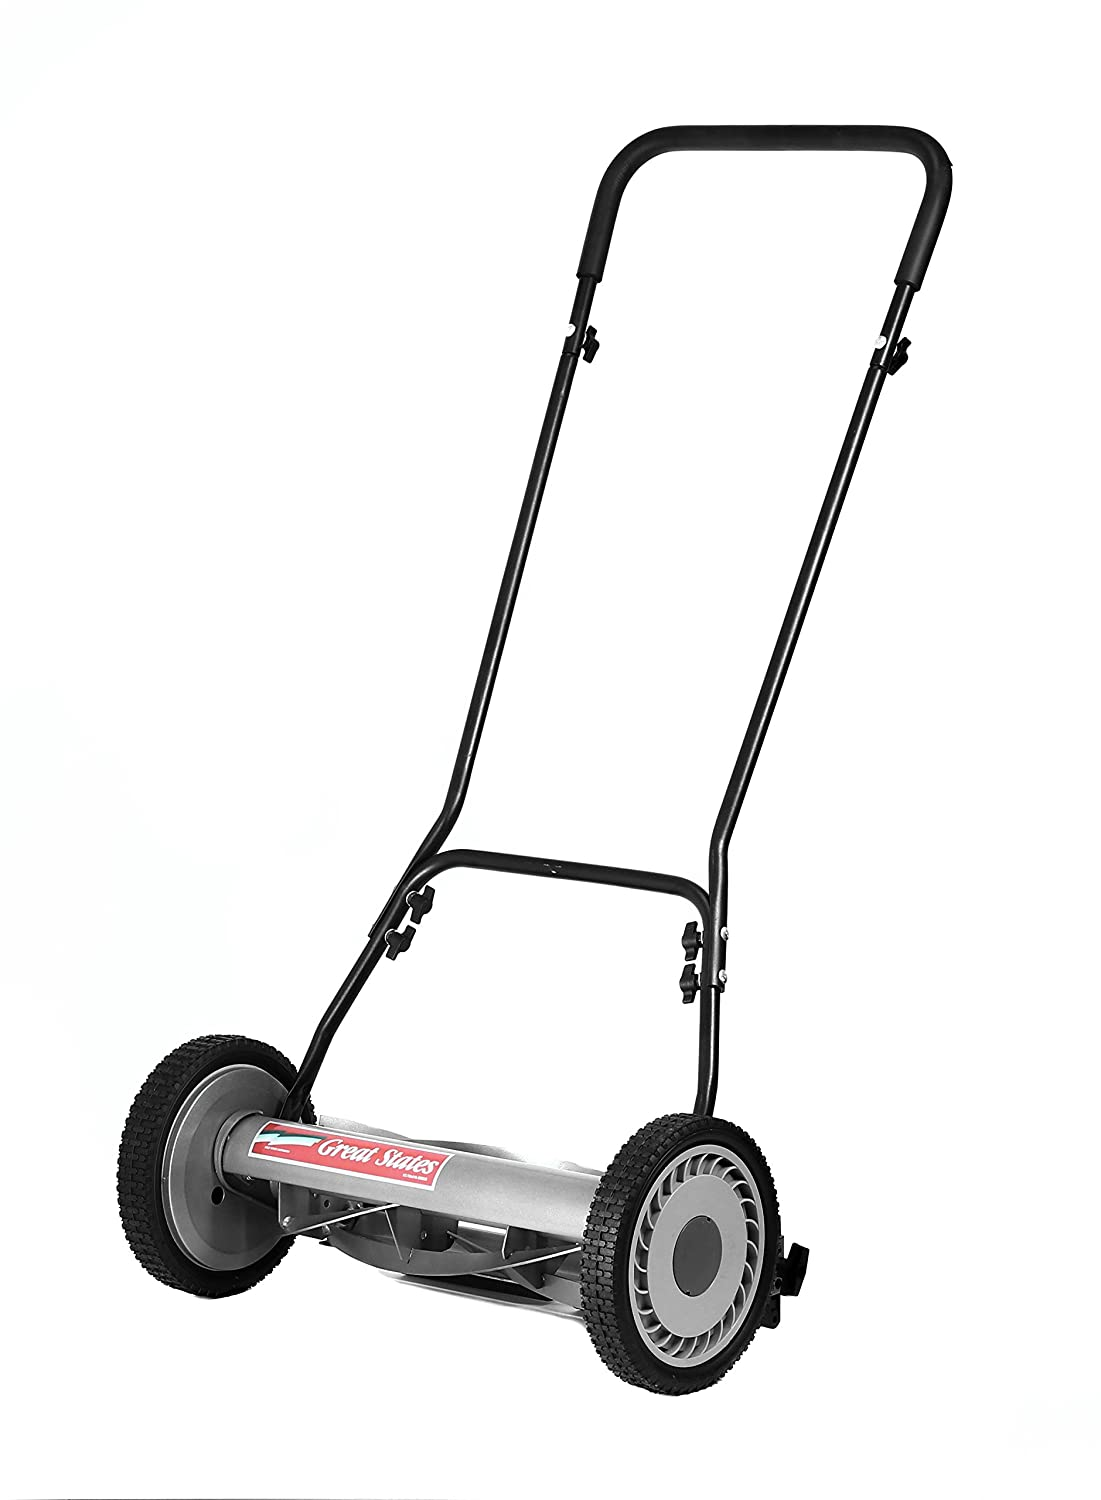 The Great States 815-18 Five Blade, 18 Inch Push Reel Mower